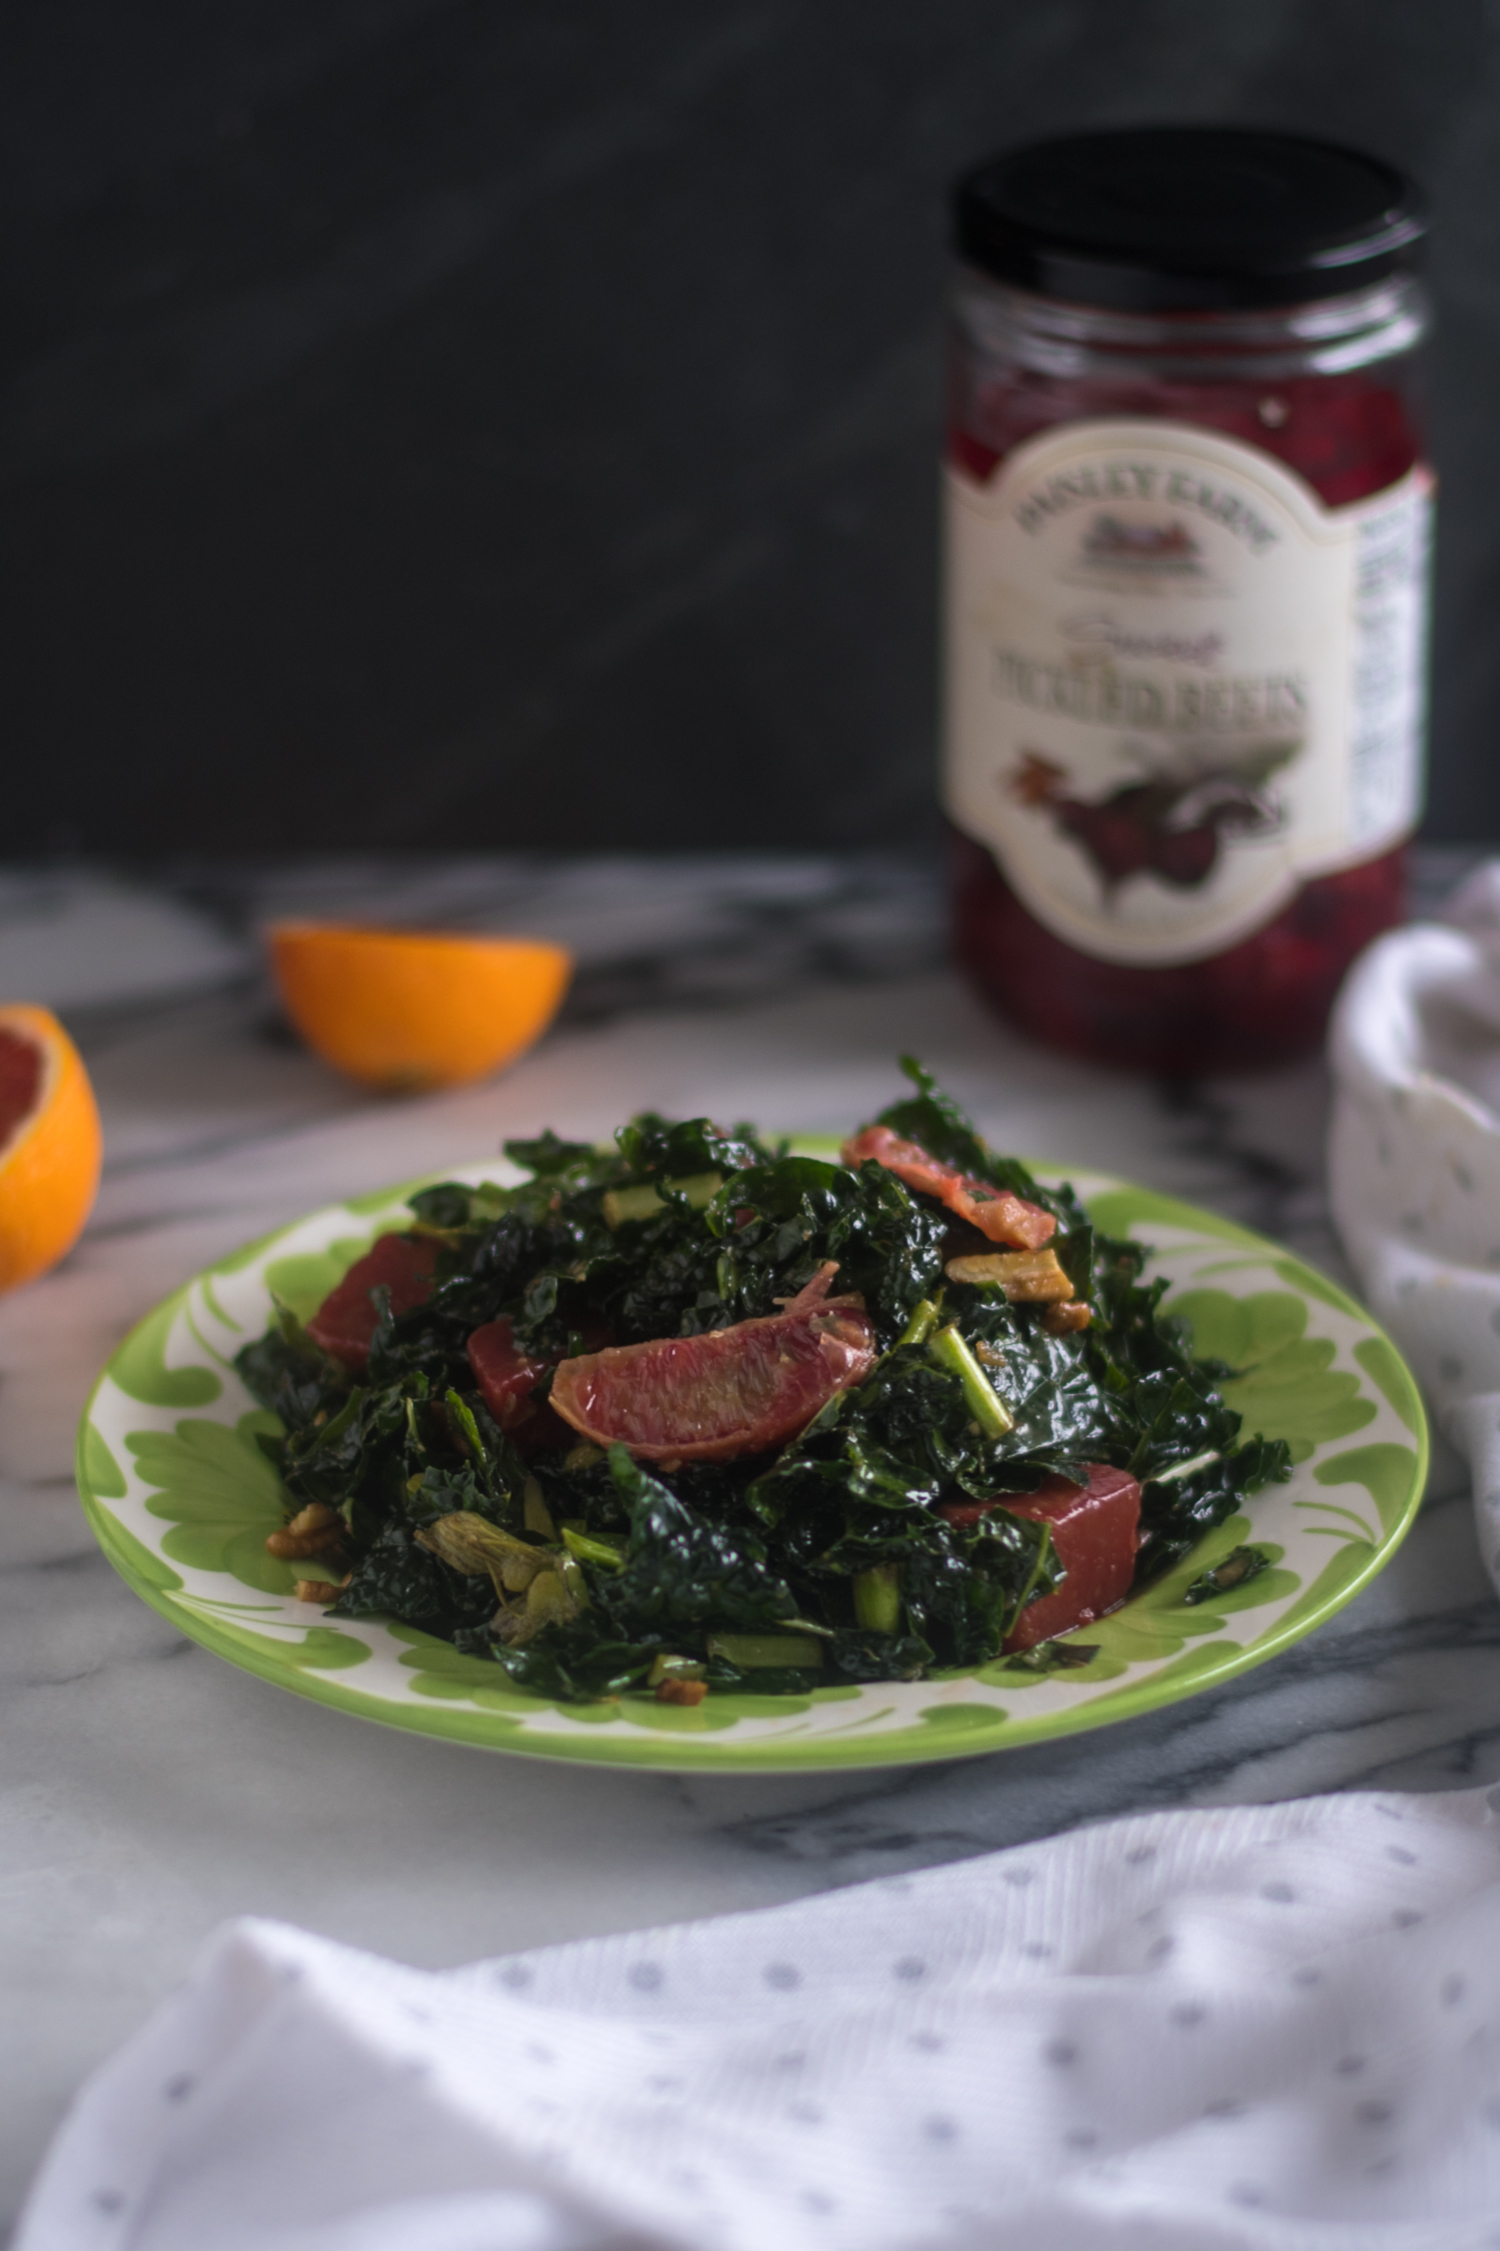 Pickled Beet and Orange Kale Salad with a warm maple and balsamic dressing is perfect for the holidays.